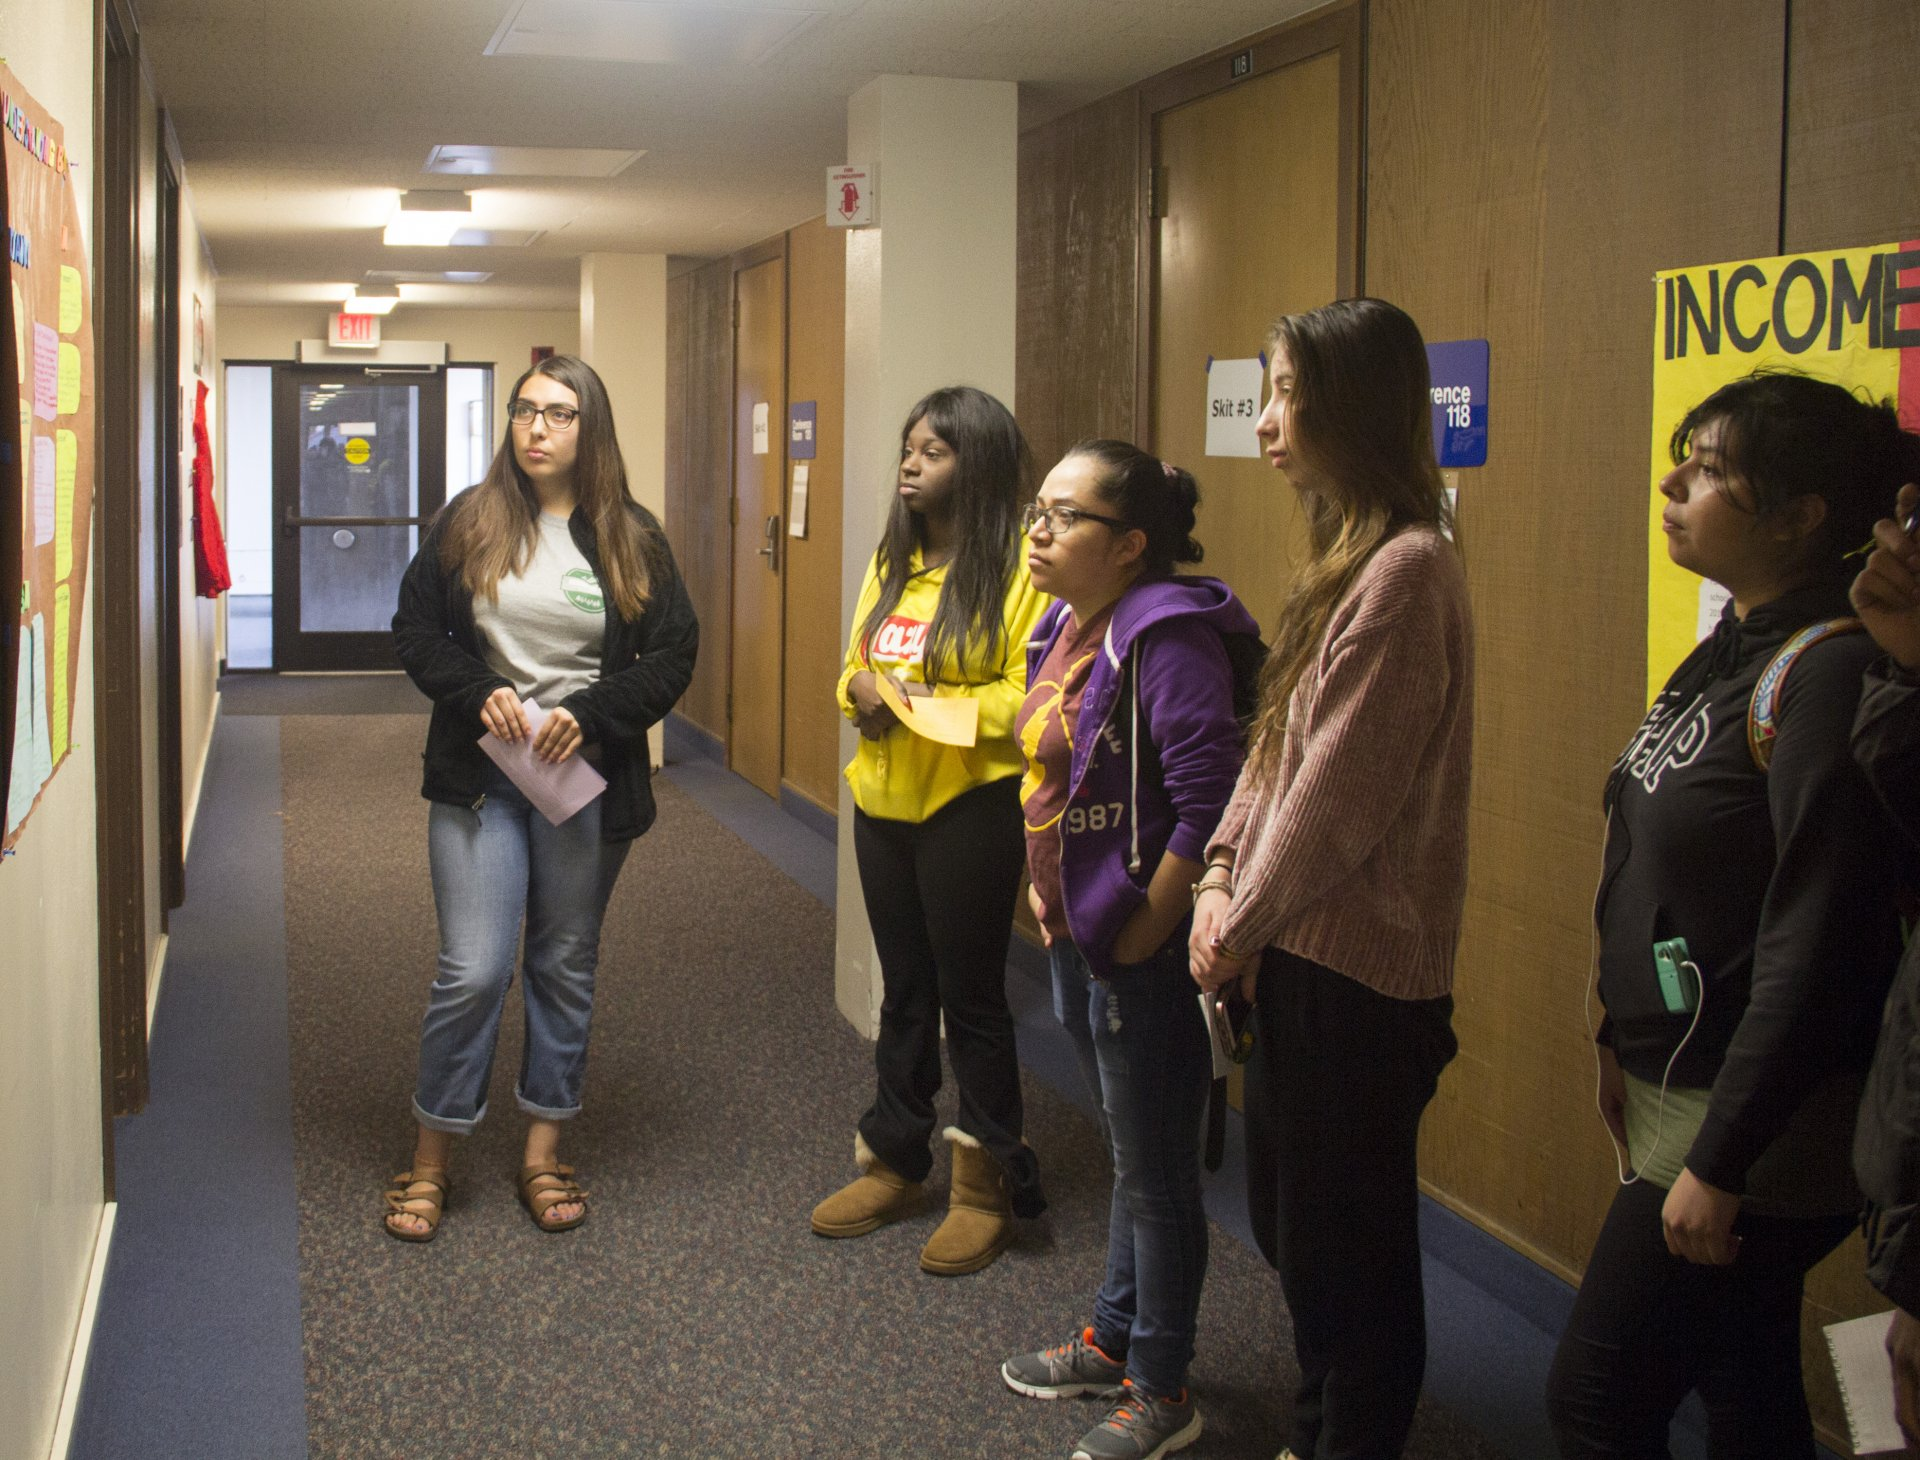 Tour guide Samantha Mariscal (left) stops to present a poster as she leads a group to the next skit in the Tunnel Of Oppression on Feb. 15. Photo by Surya Gopalan.